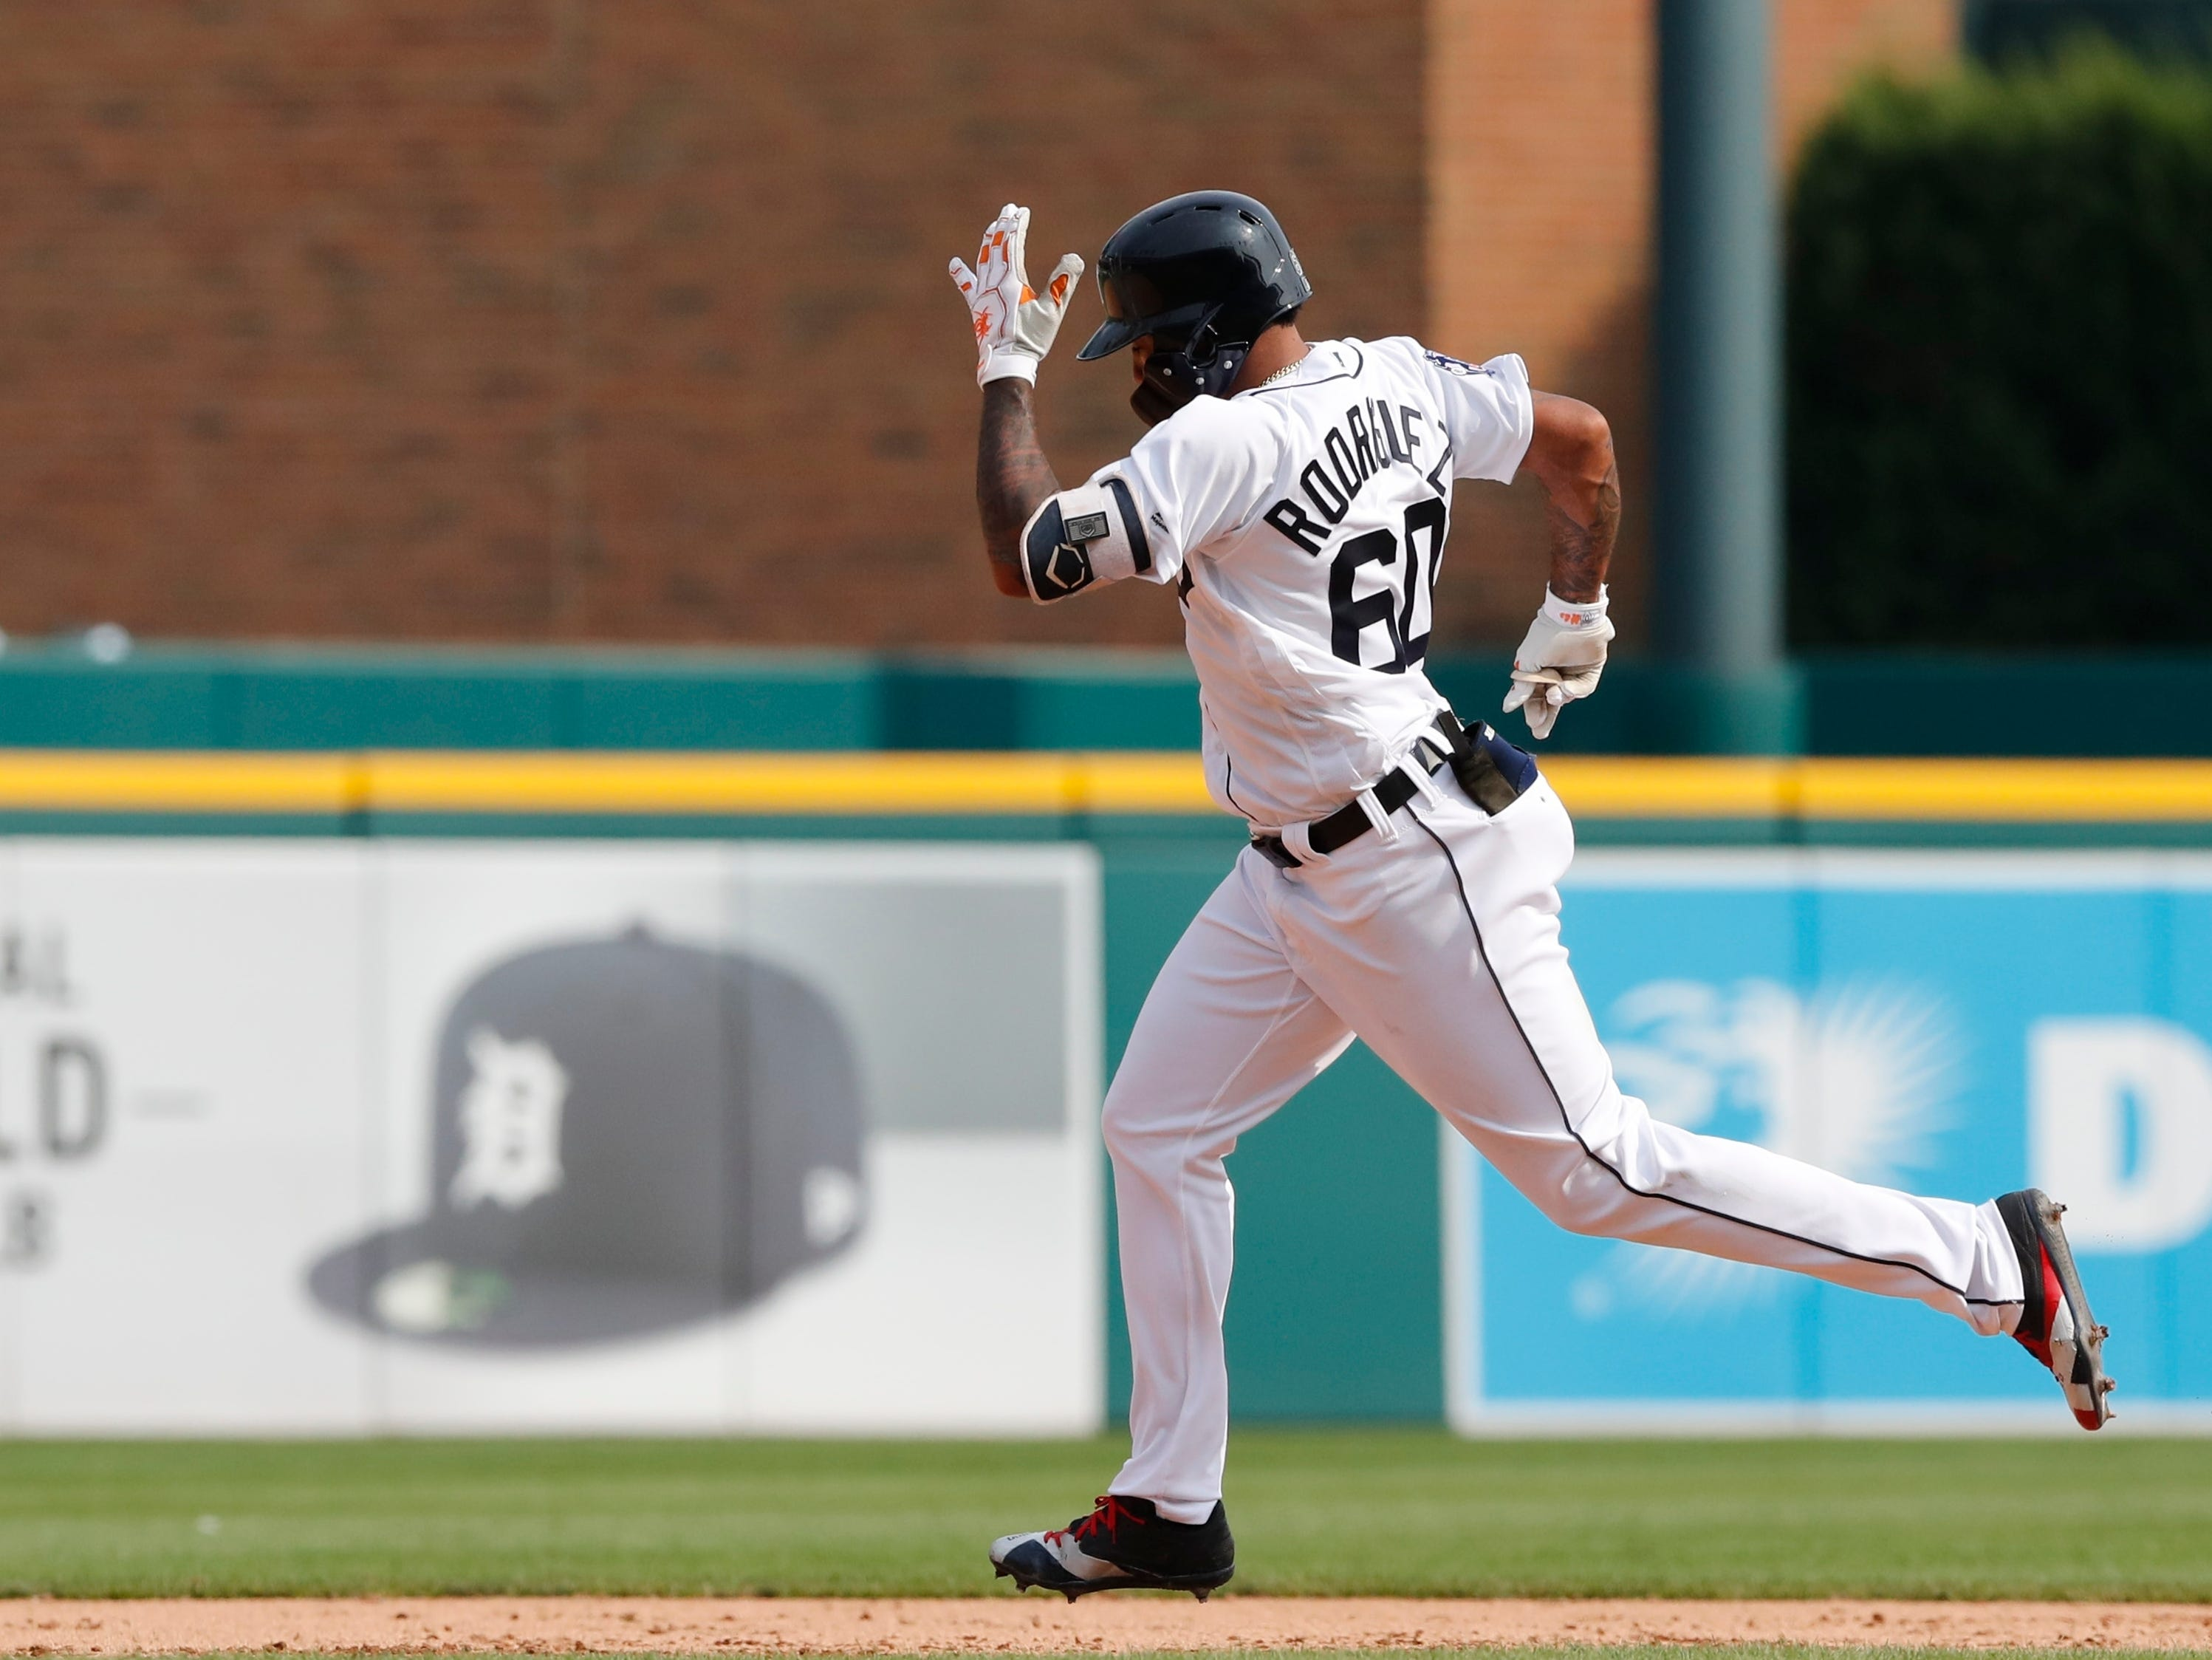 Detroit Tigers' Ronny Rodriguez rounds the bases after his solo home run during the ninth inning.